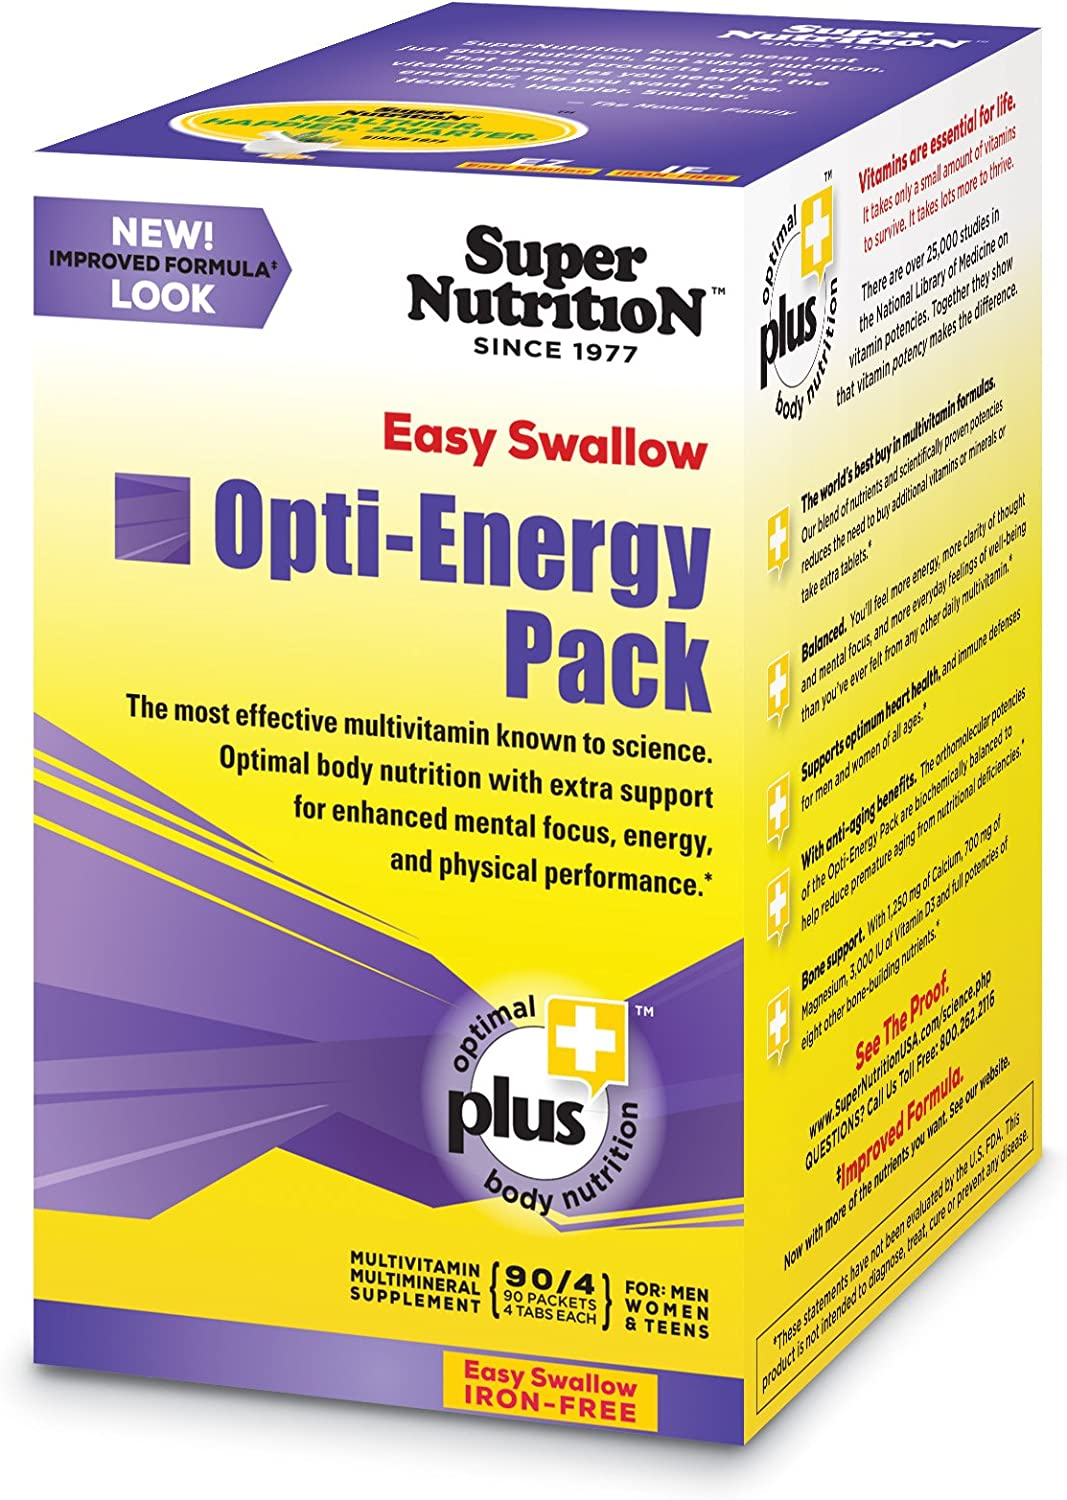 Super Nutrition, Opti-Energy Pack, EZ Swallow, Iron-Free, High Potency Multi-Vitamin, 30 Packets